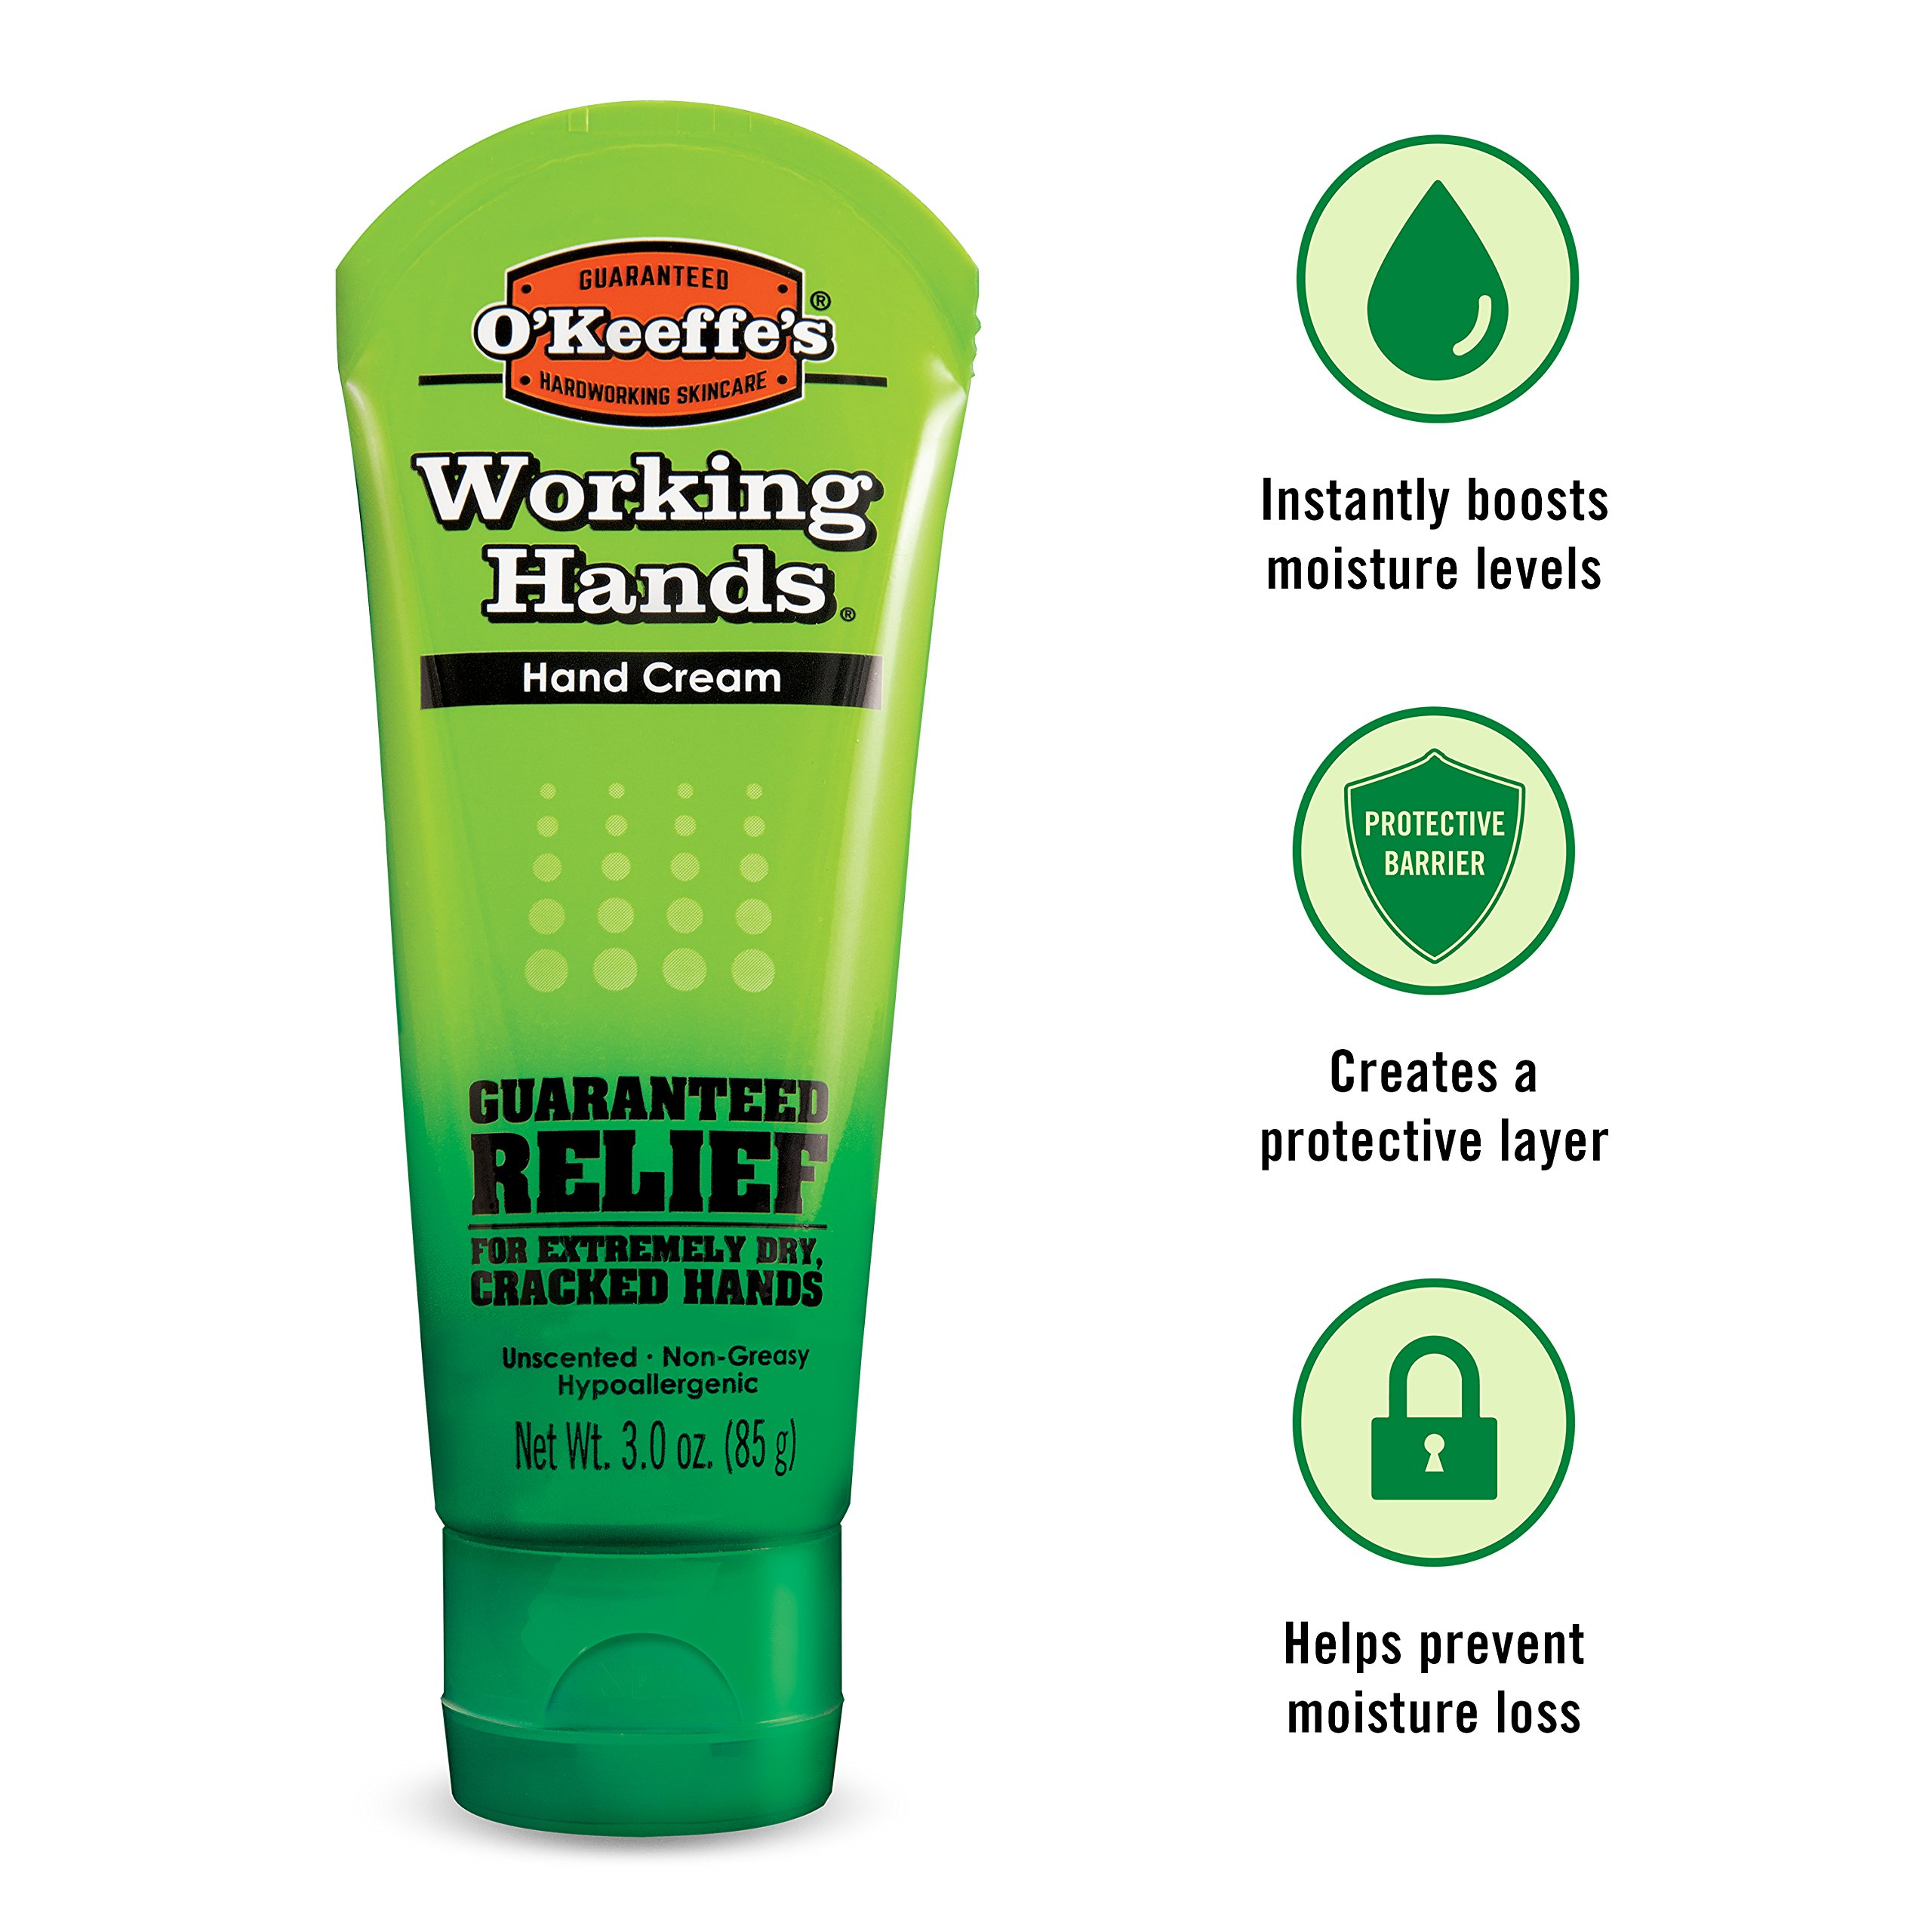 O'Keeffe's K0290007 Working Hands Hand Cream, 3 oz, Tube, (Pack of 2) by O'Keeffe's (Image #6)